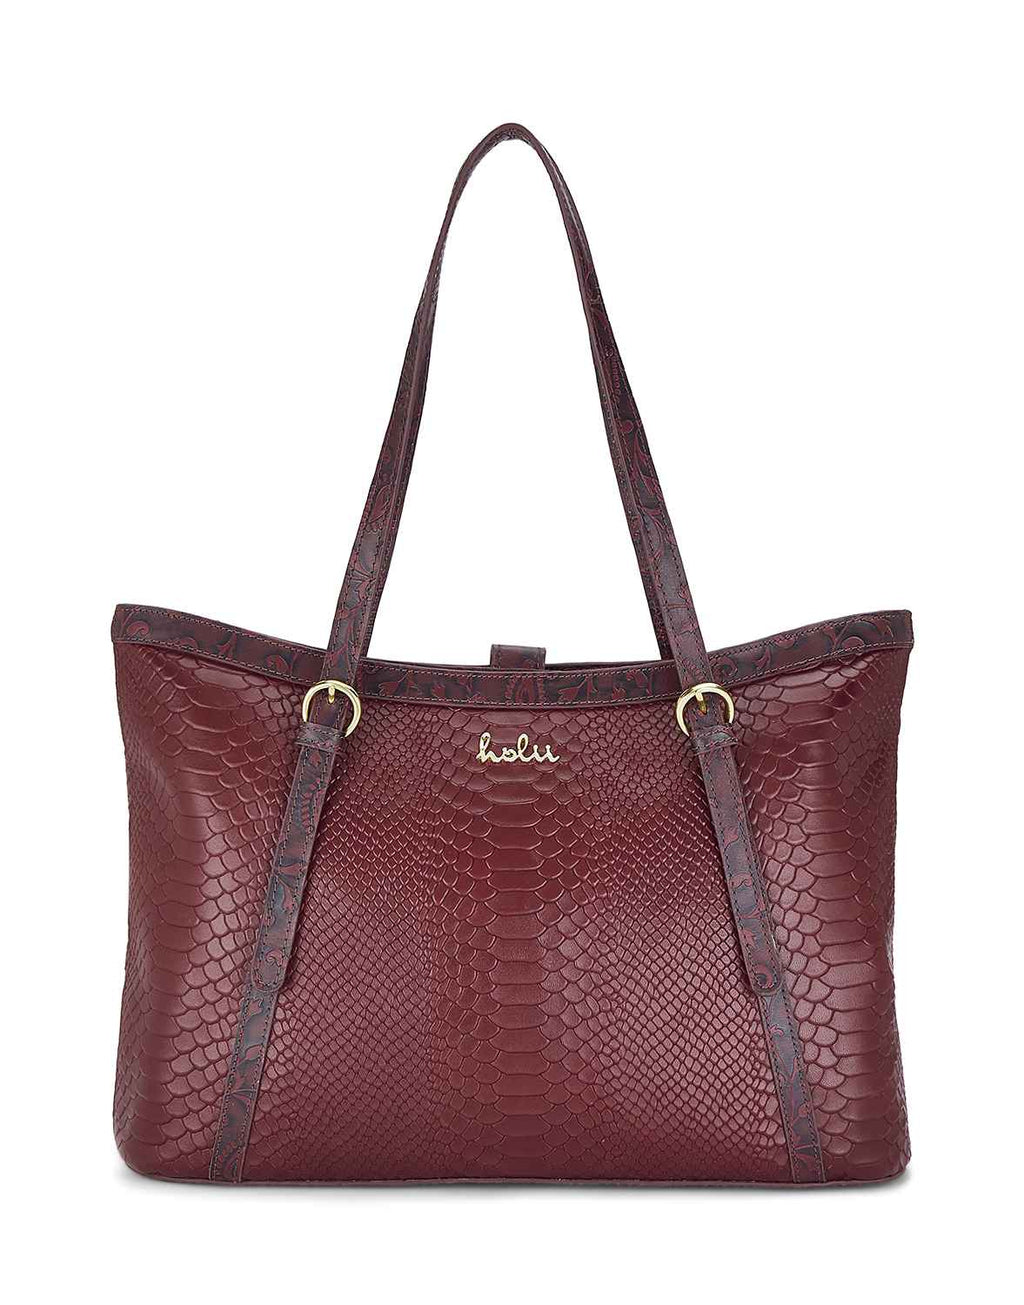 Aden Leather Tote